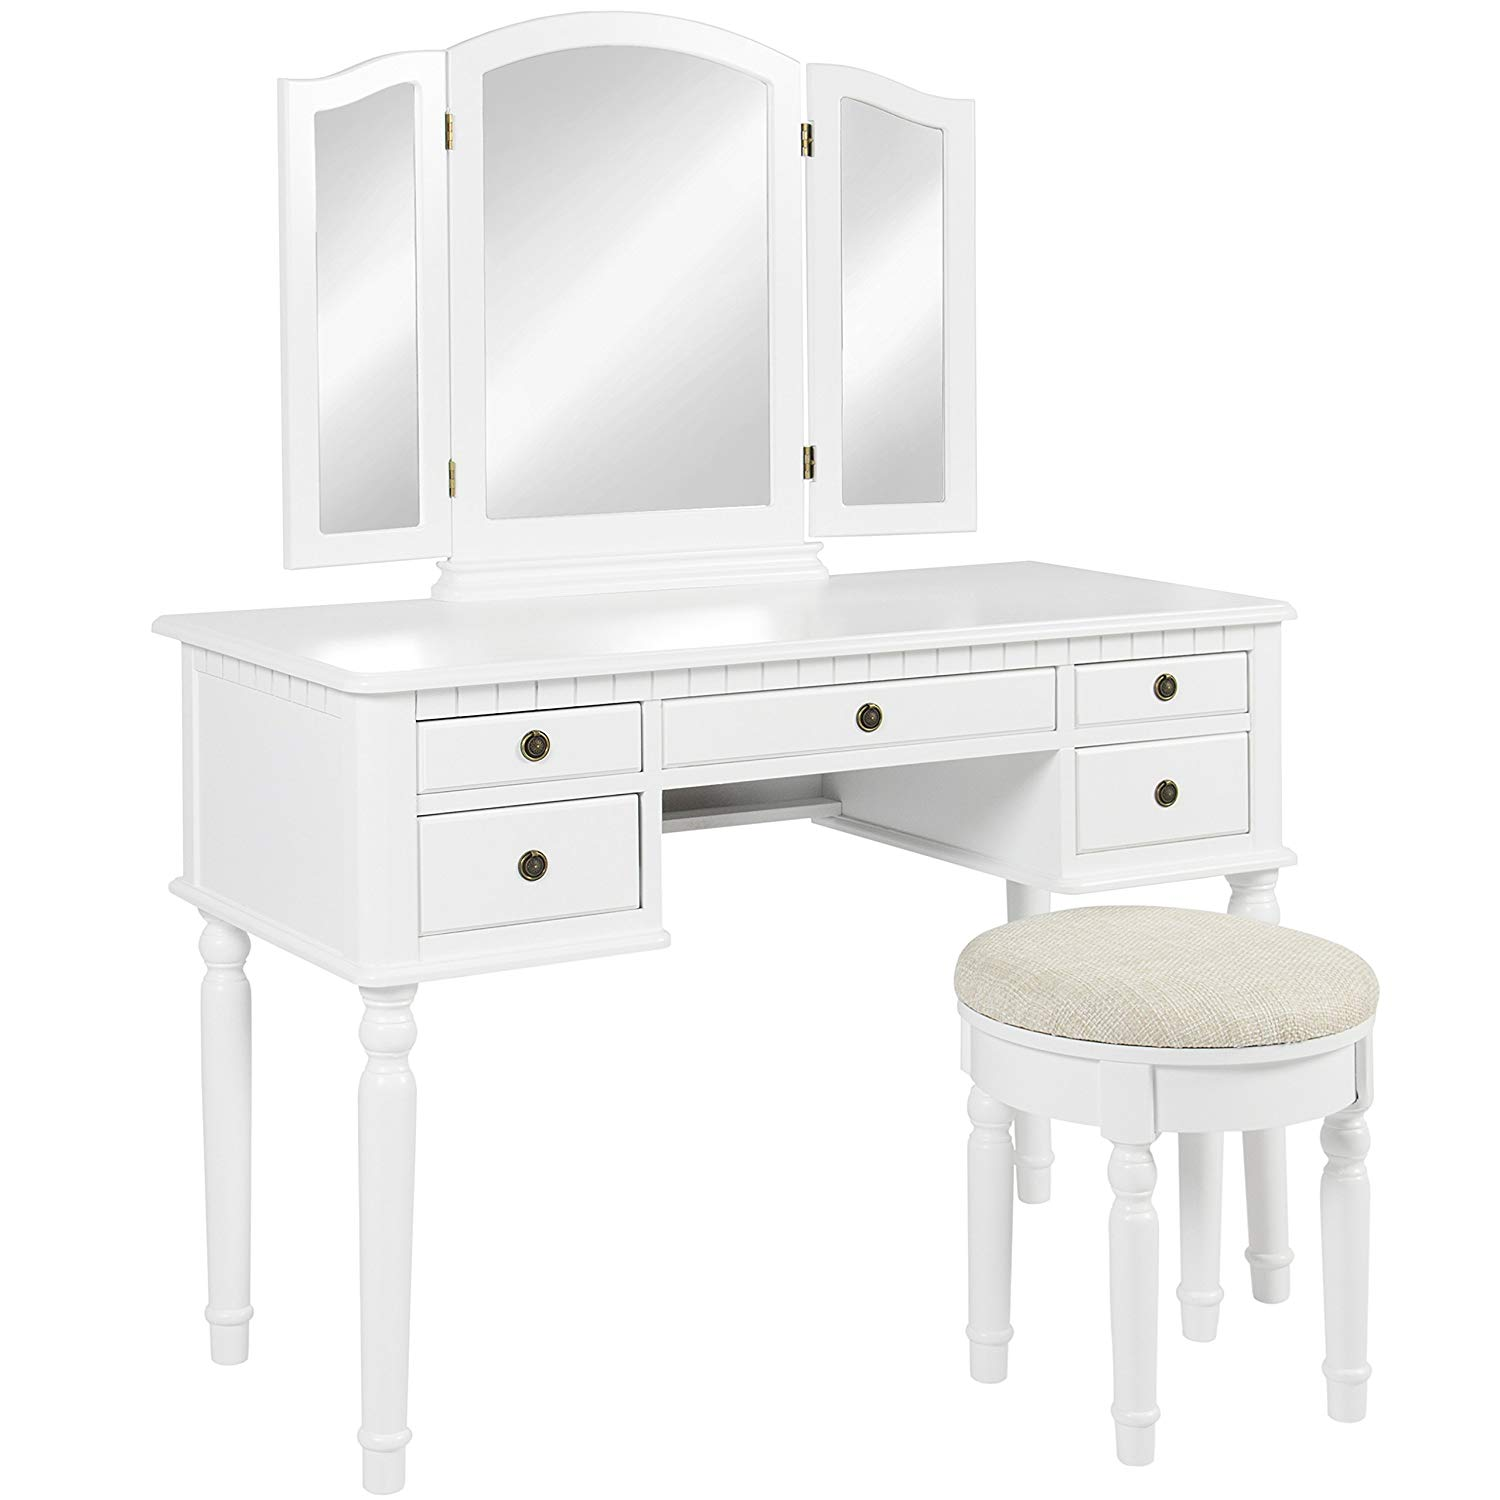 Makeup Cosmetic Beauty Vanity Hair Dressing Table Set w/Tri-Folding  Mirror, Upholstered Stool Seat, 5 Drawer Storage Organizers - White: Home &  Kitchen